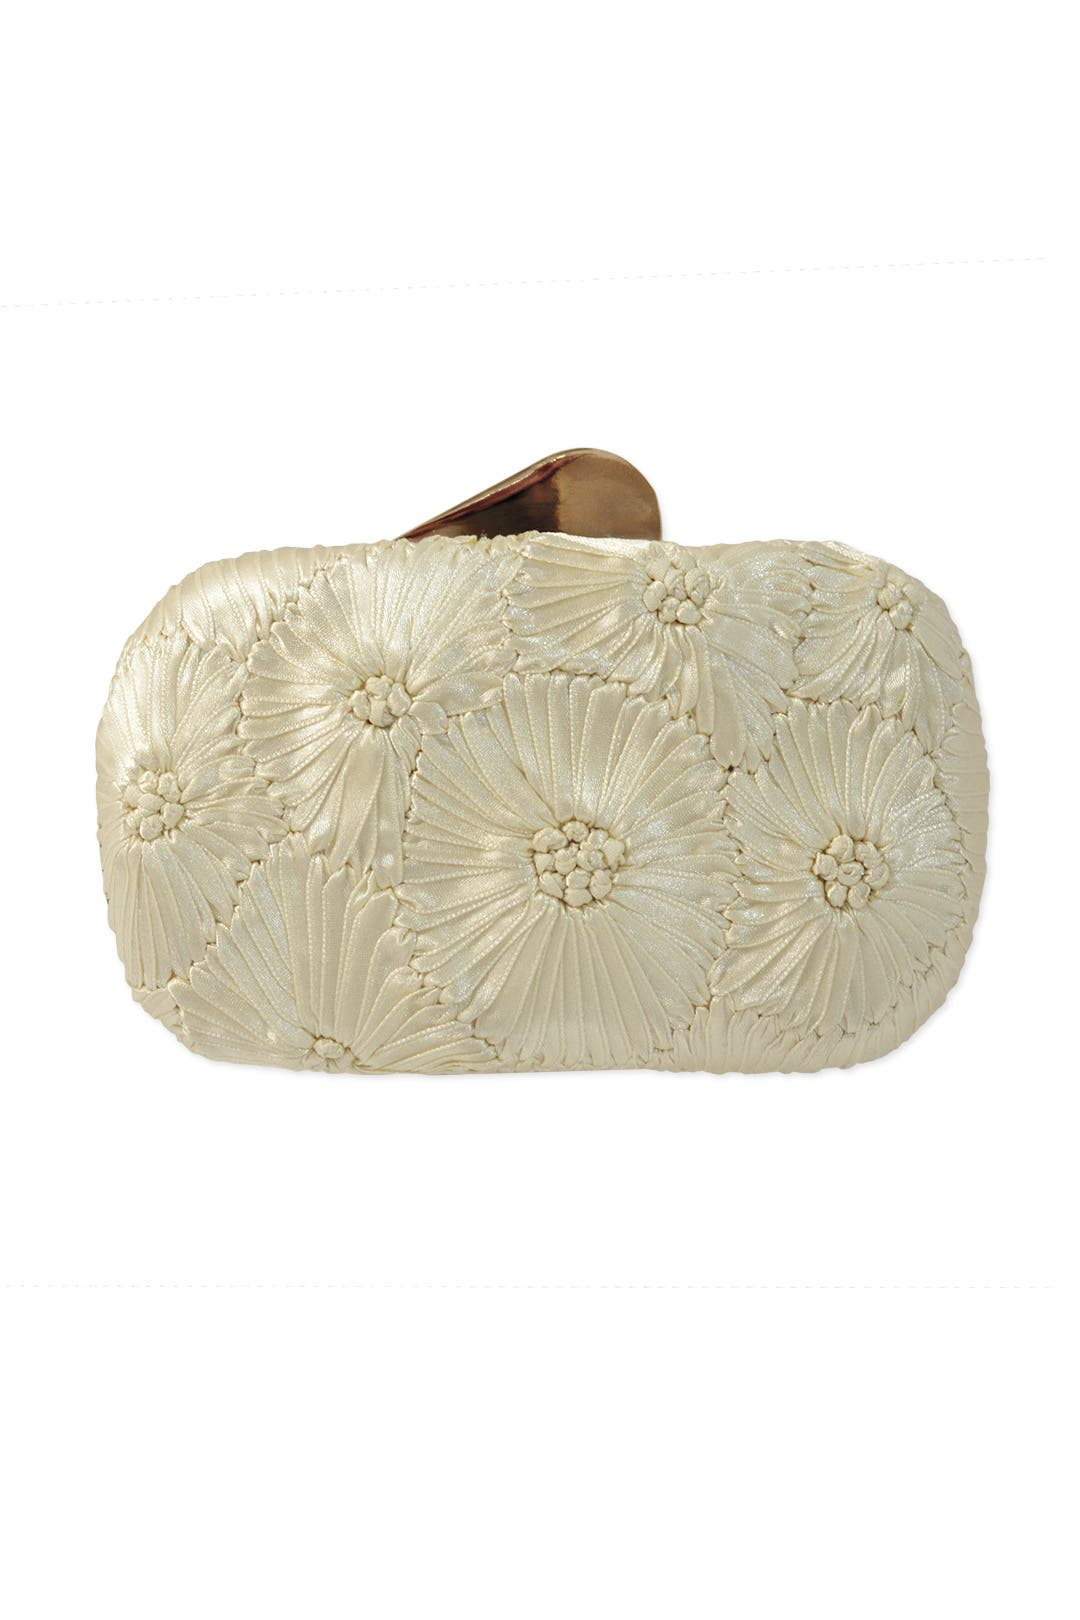 Kira Floral Minaudiere by Franchi